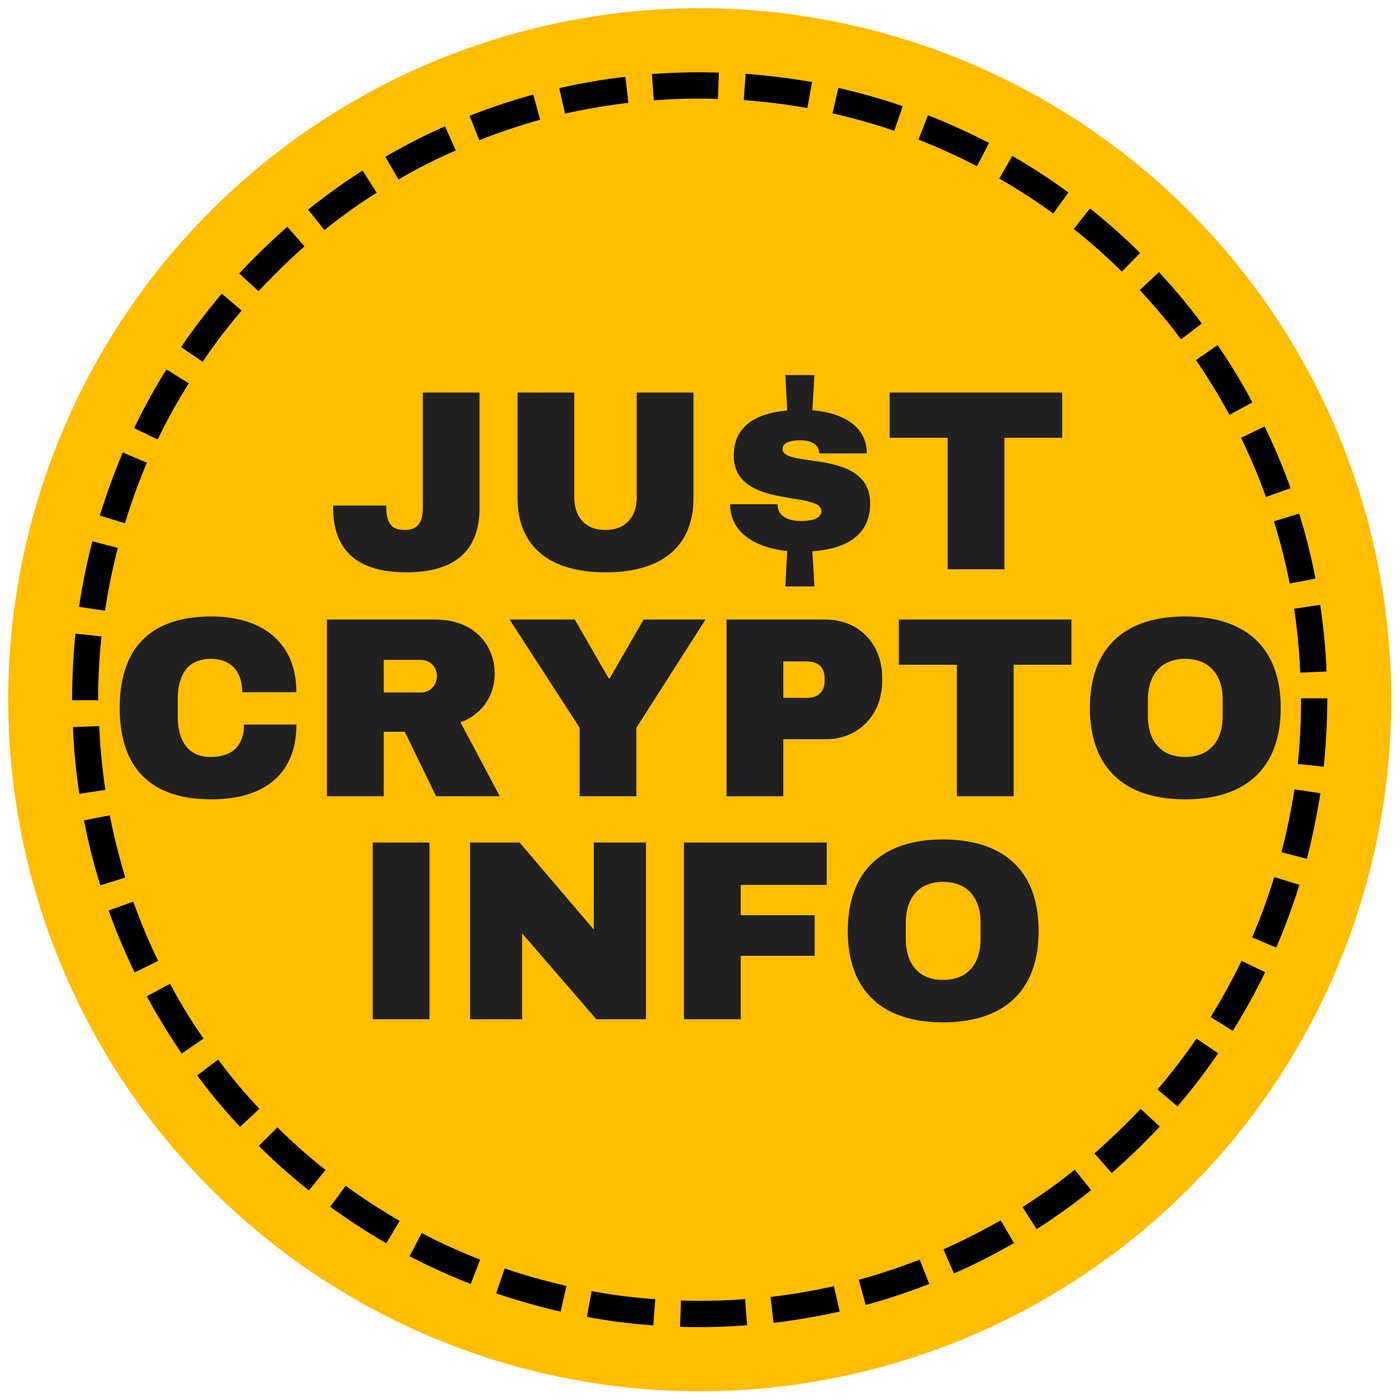 Just Crypto Info logo